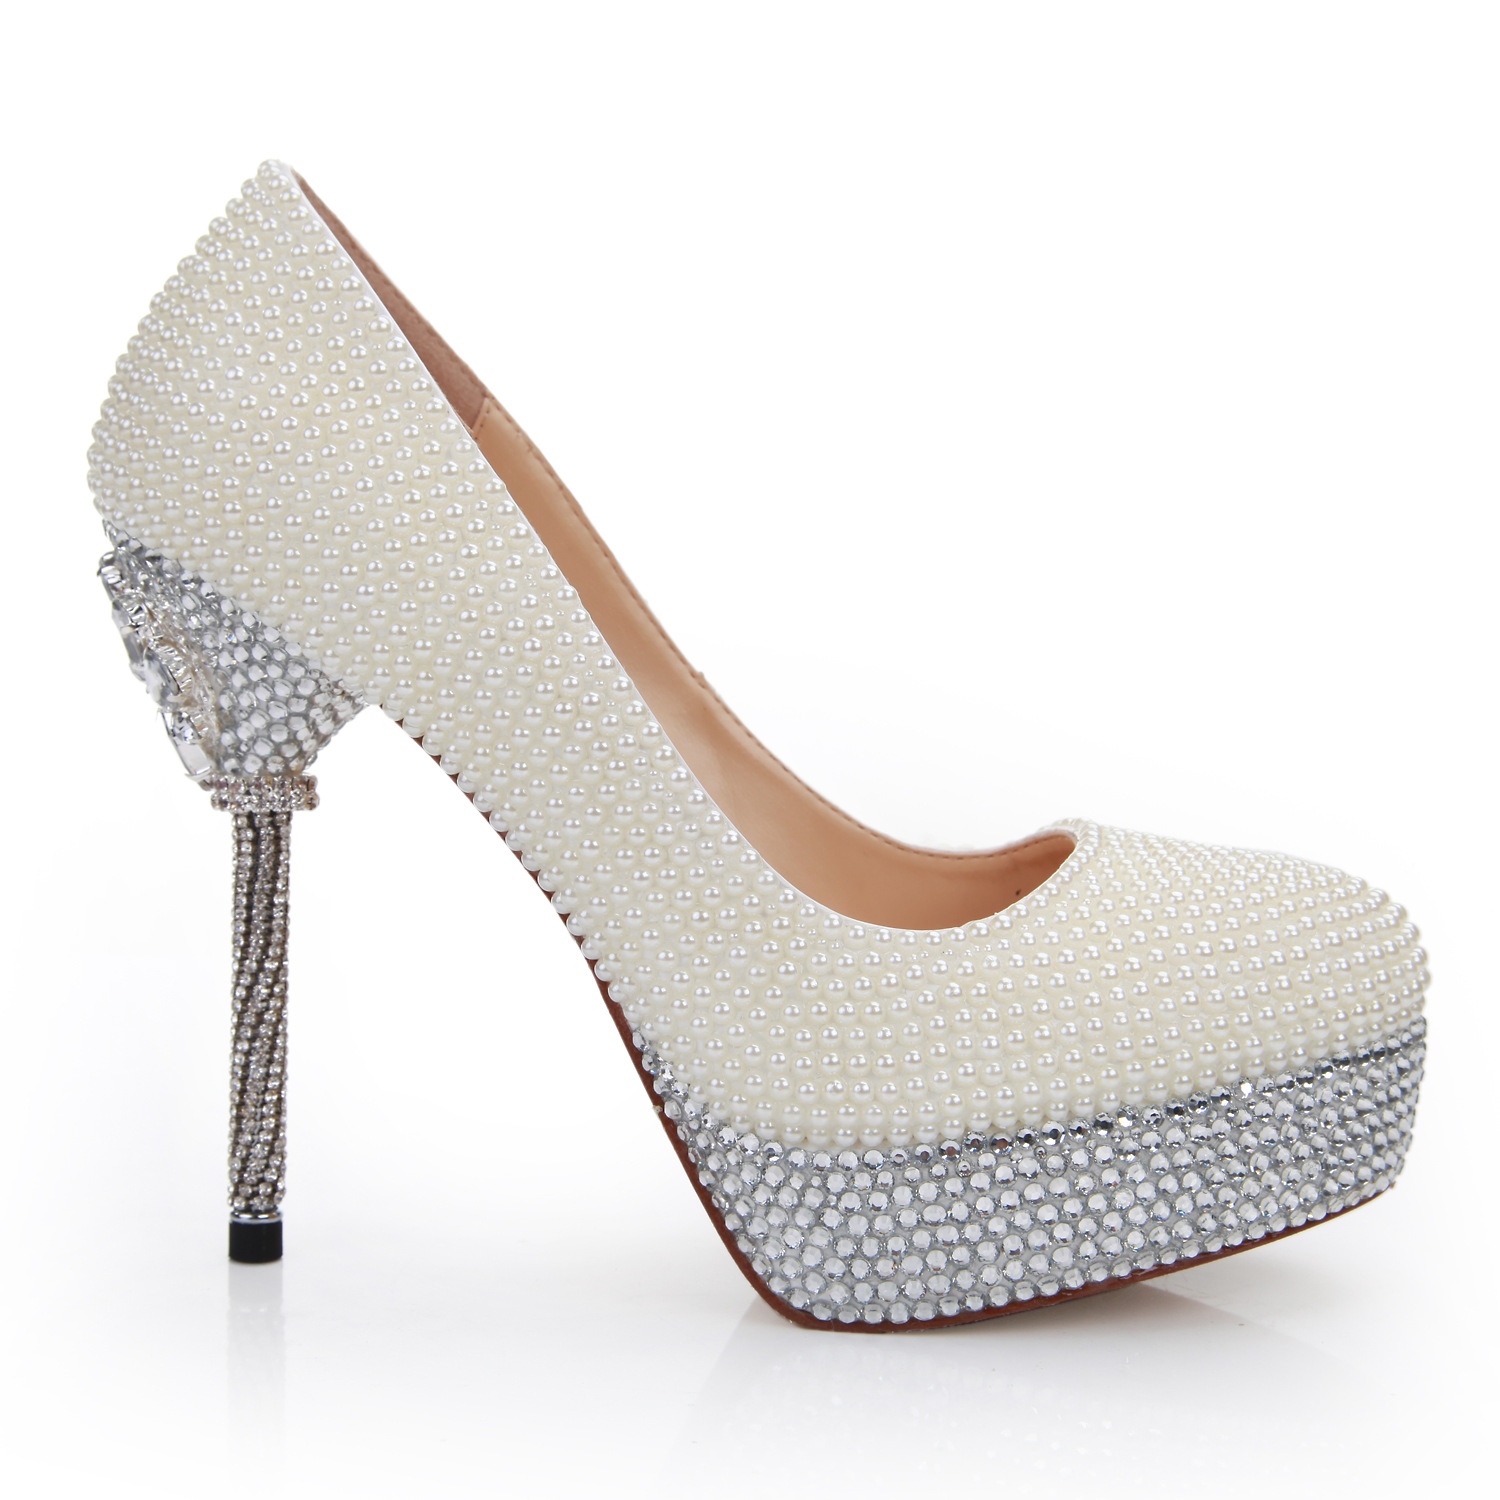 shoes with white pearl diamond bride wedding shoes waterproof shoes increased with a fine diamond wedding shoes